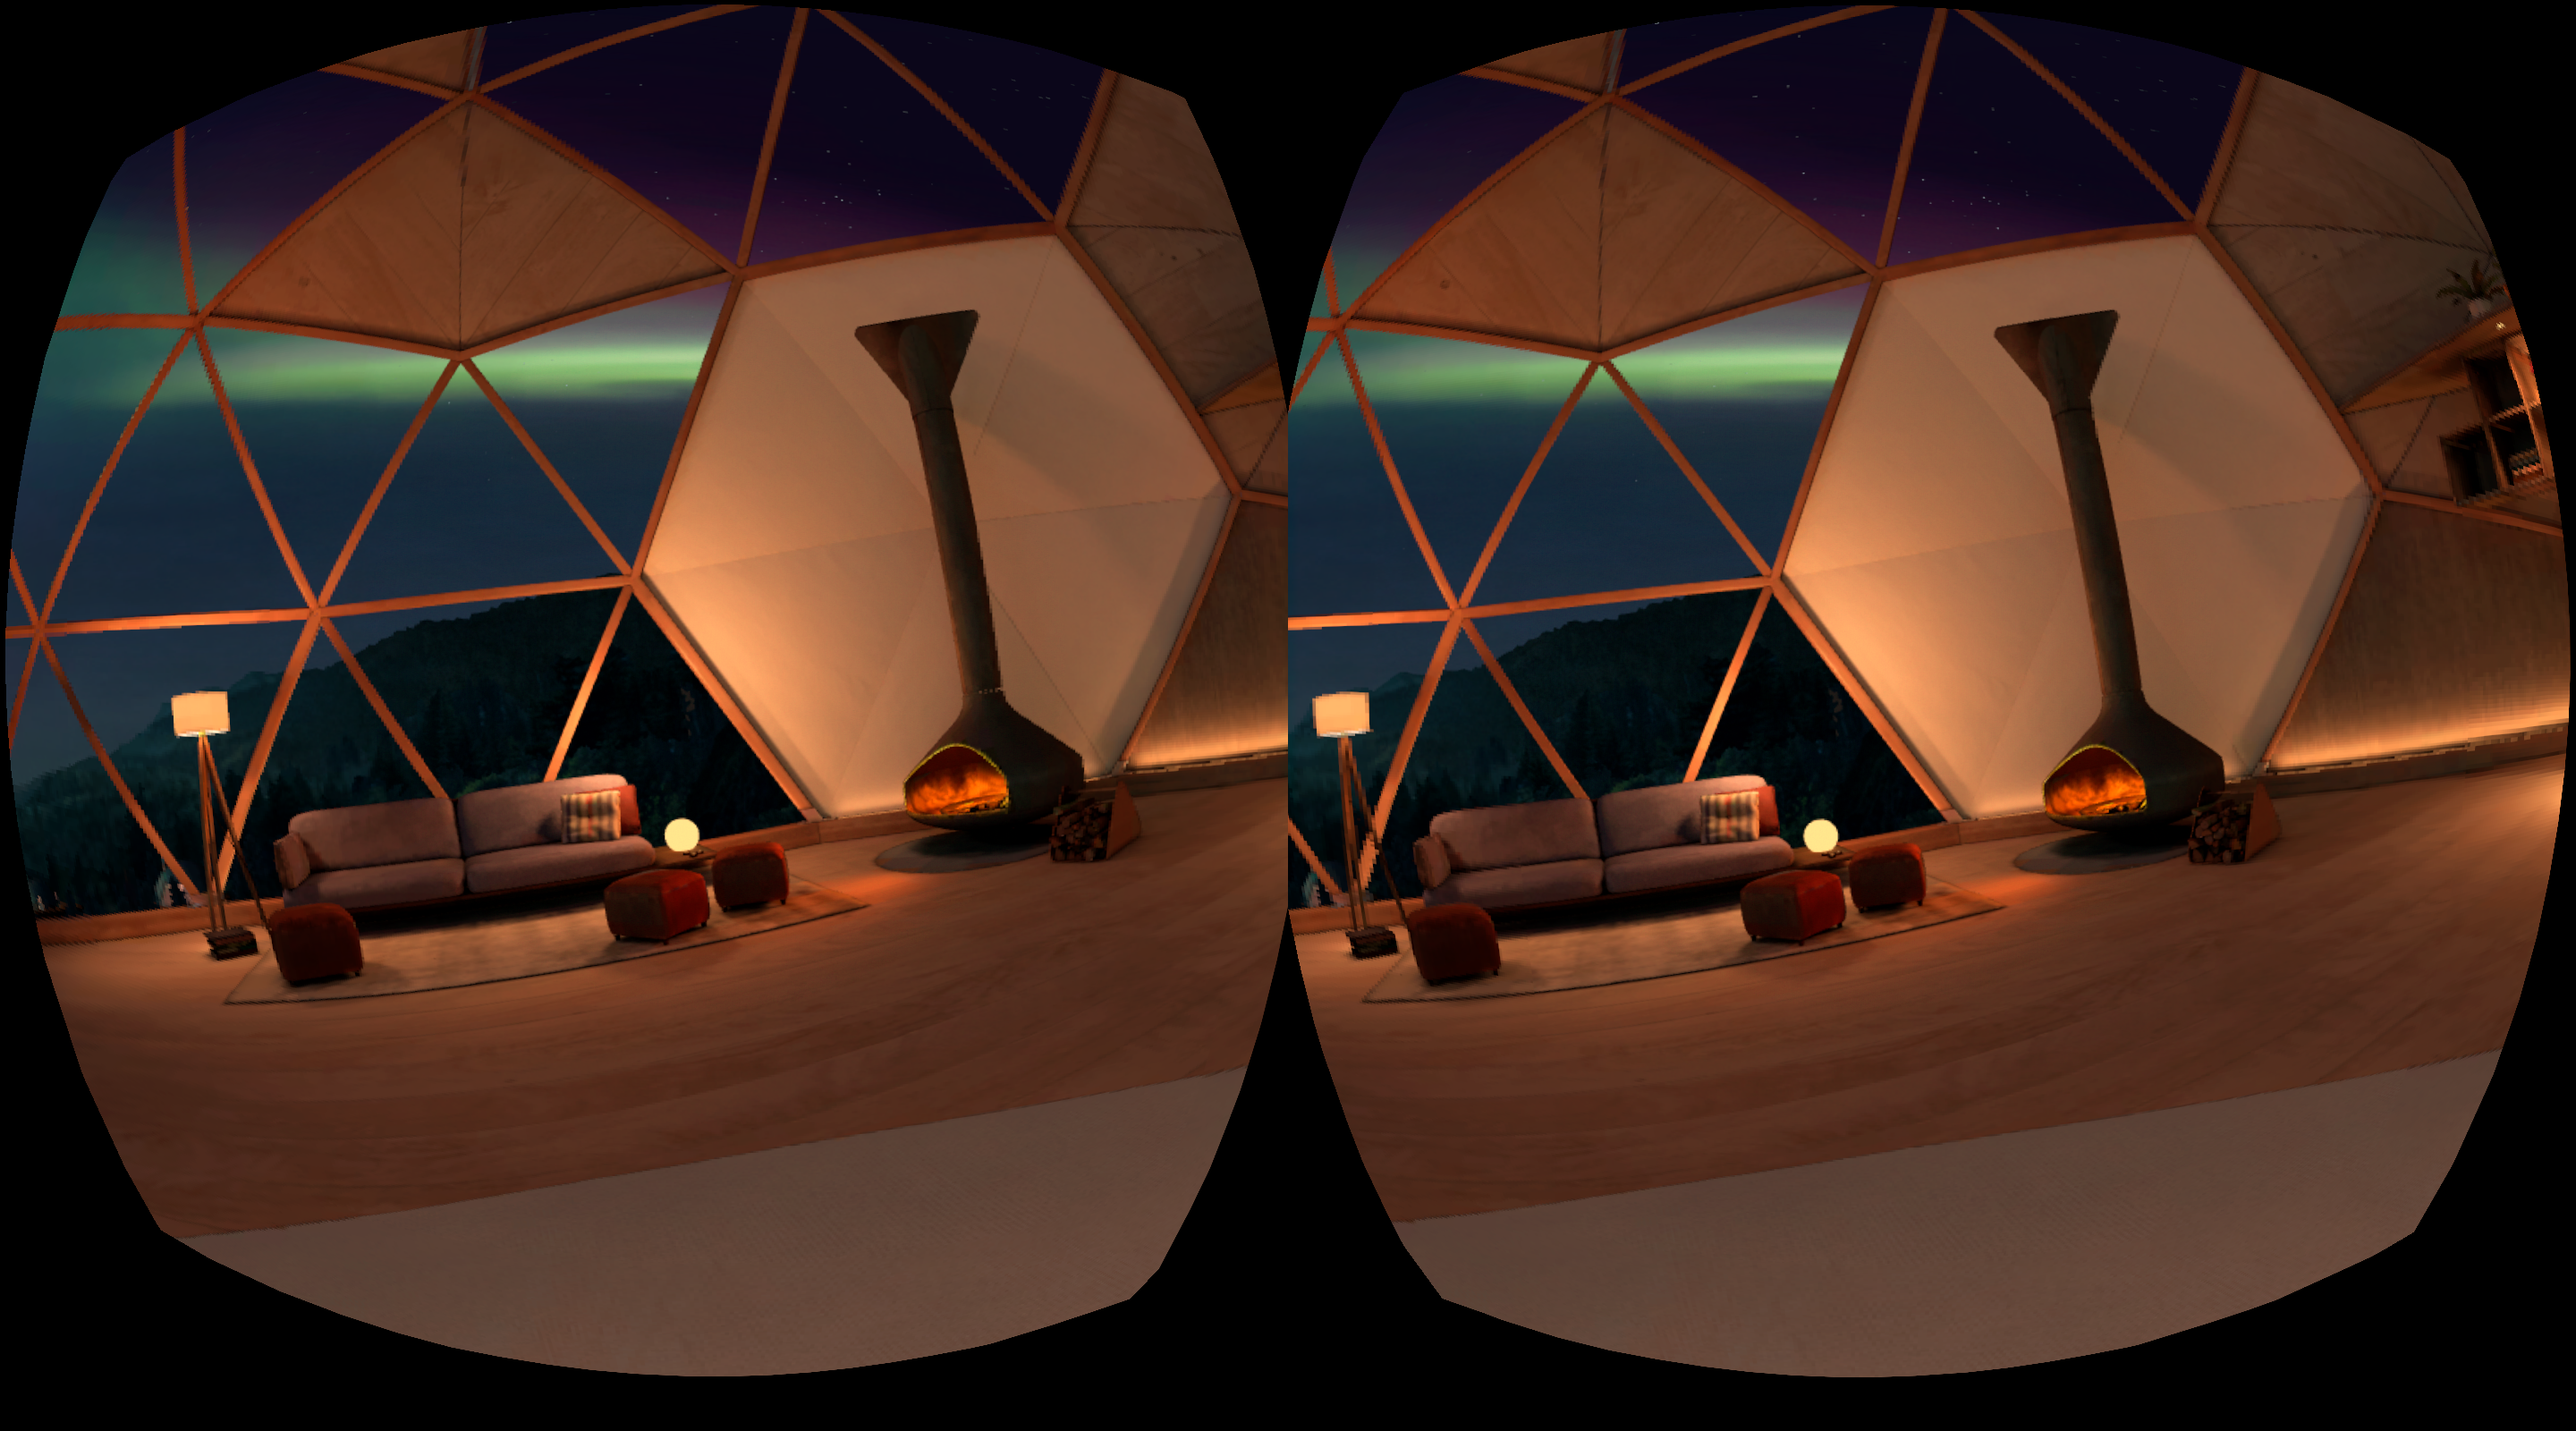 Fixed foveated rendering on Oculus Quest not working - Unity